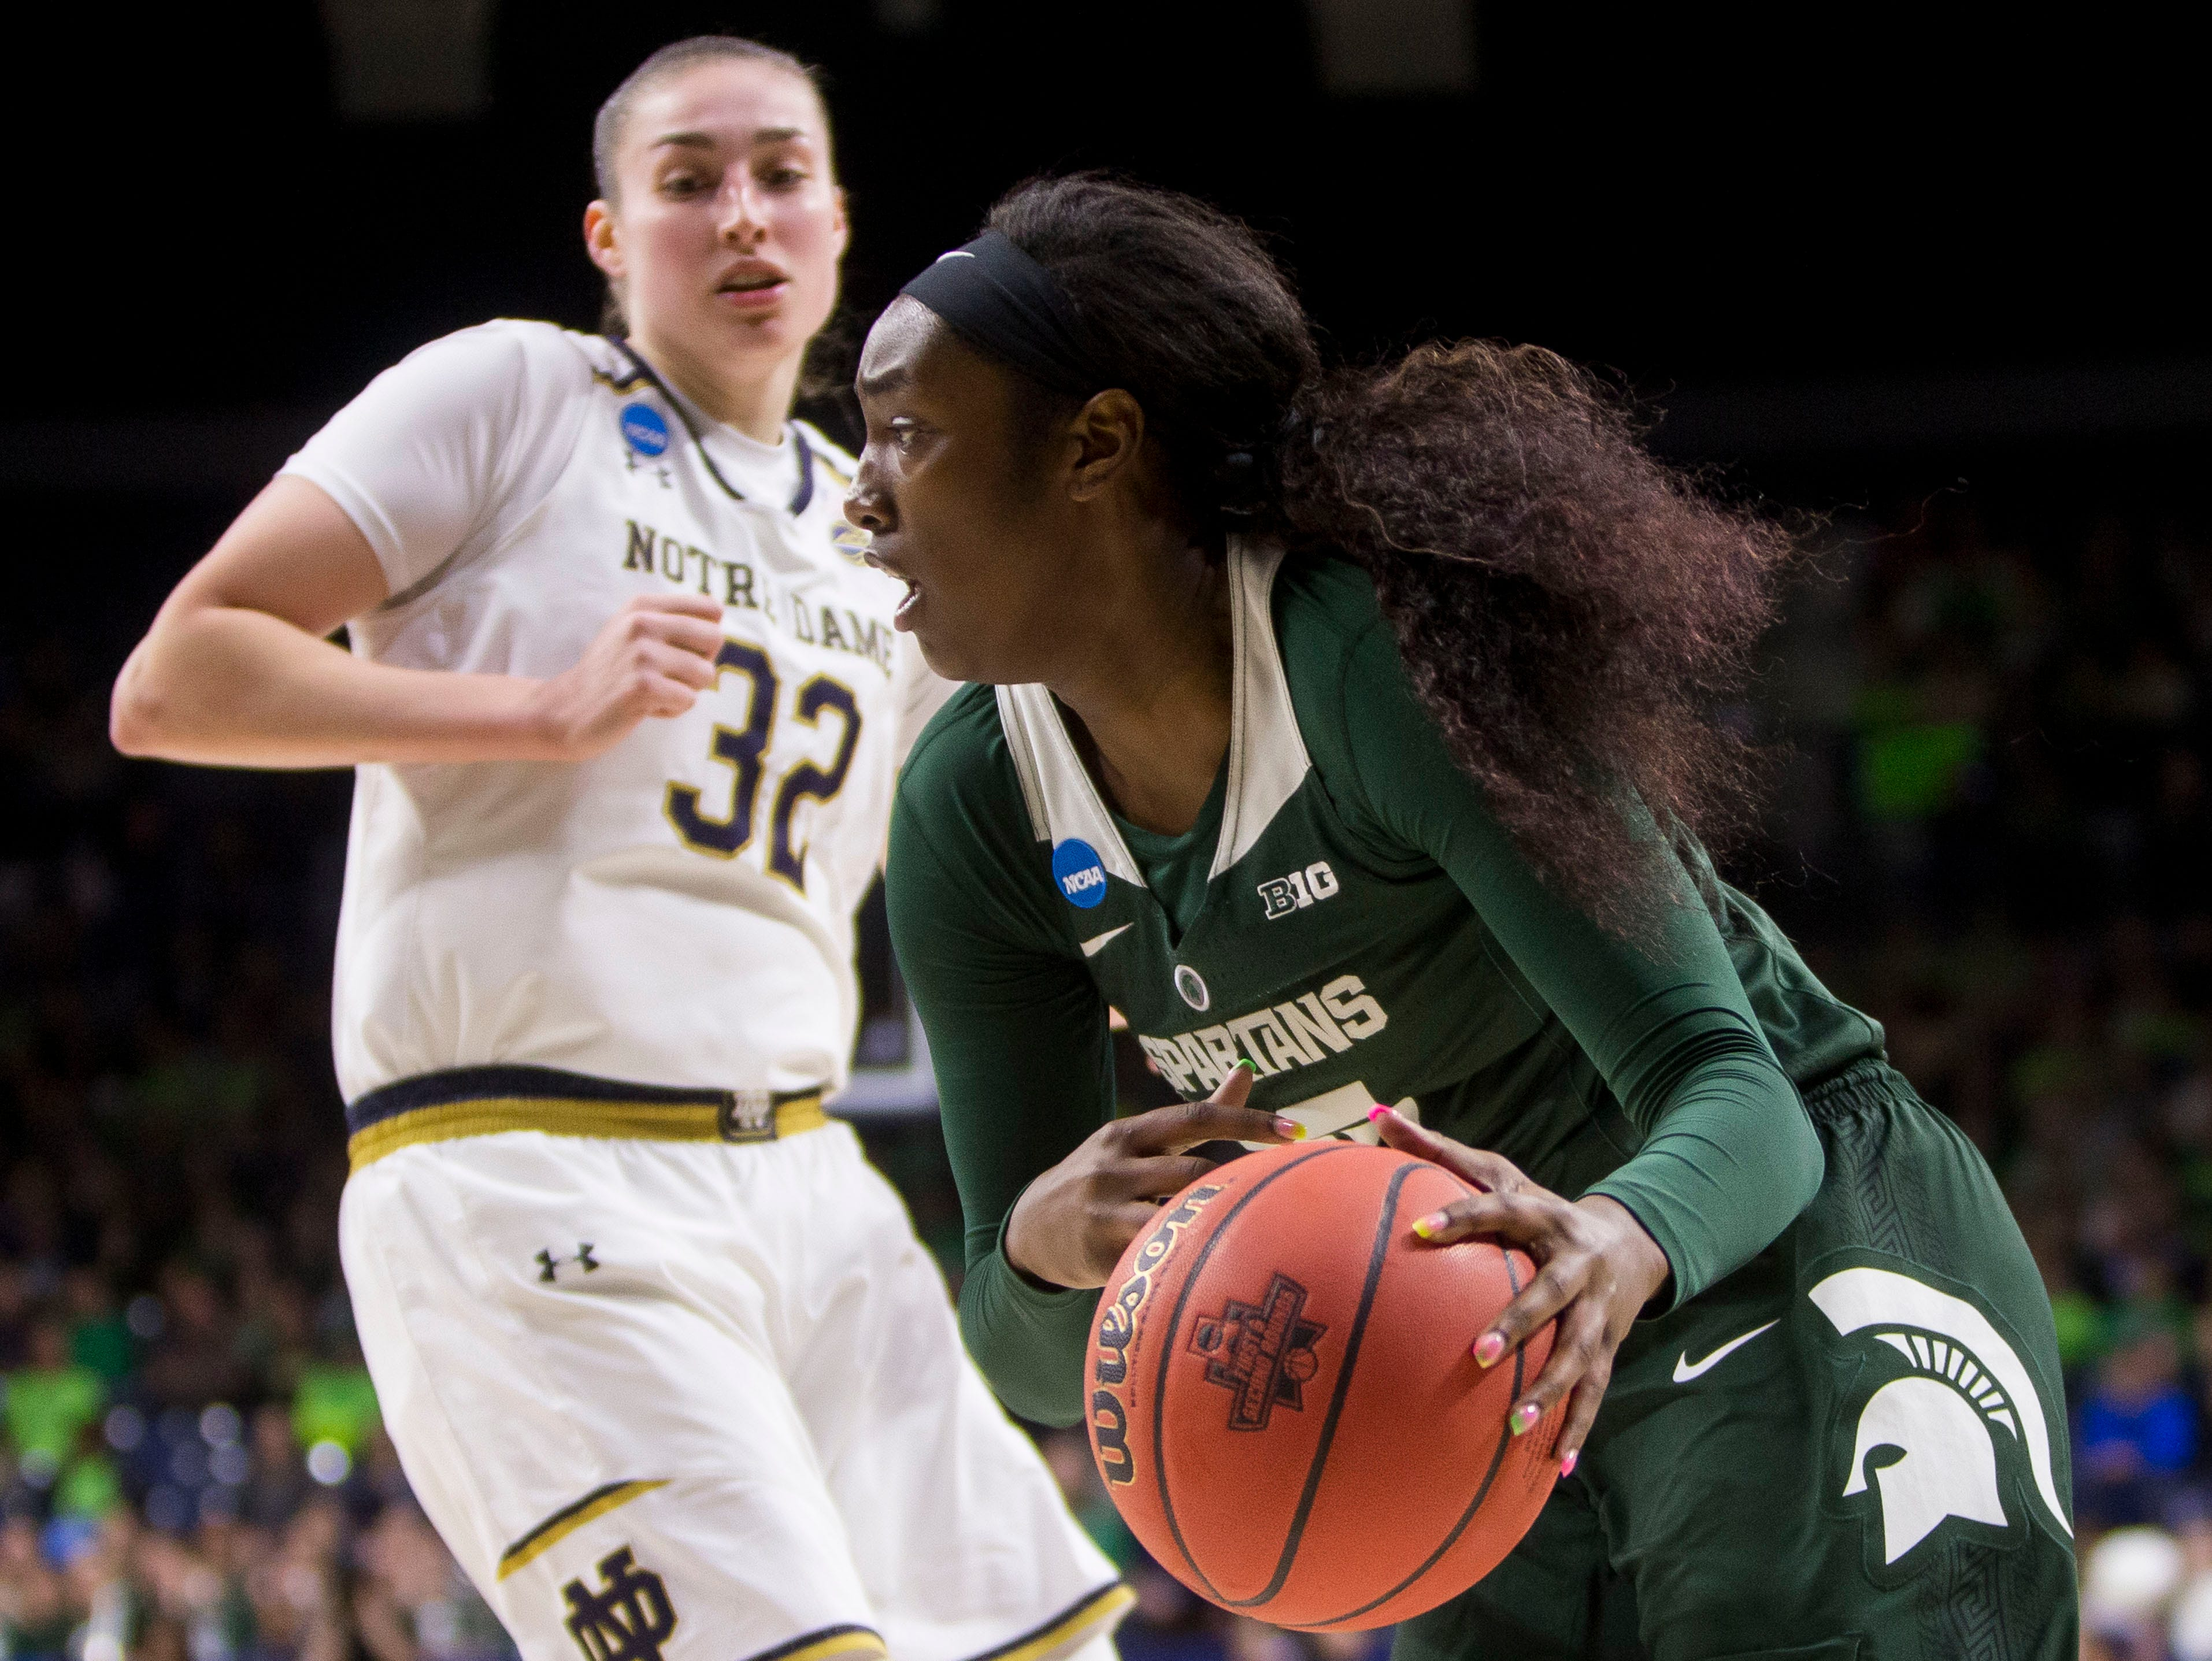 Ogunbowale and Young show way as Irish rout MSU, 91-63